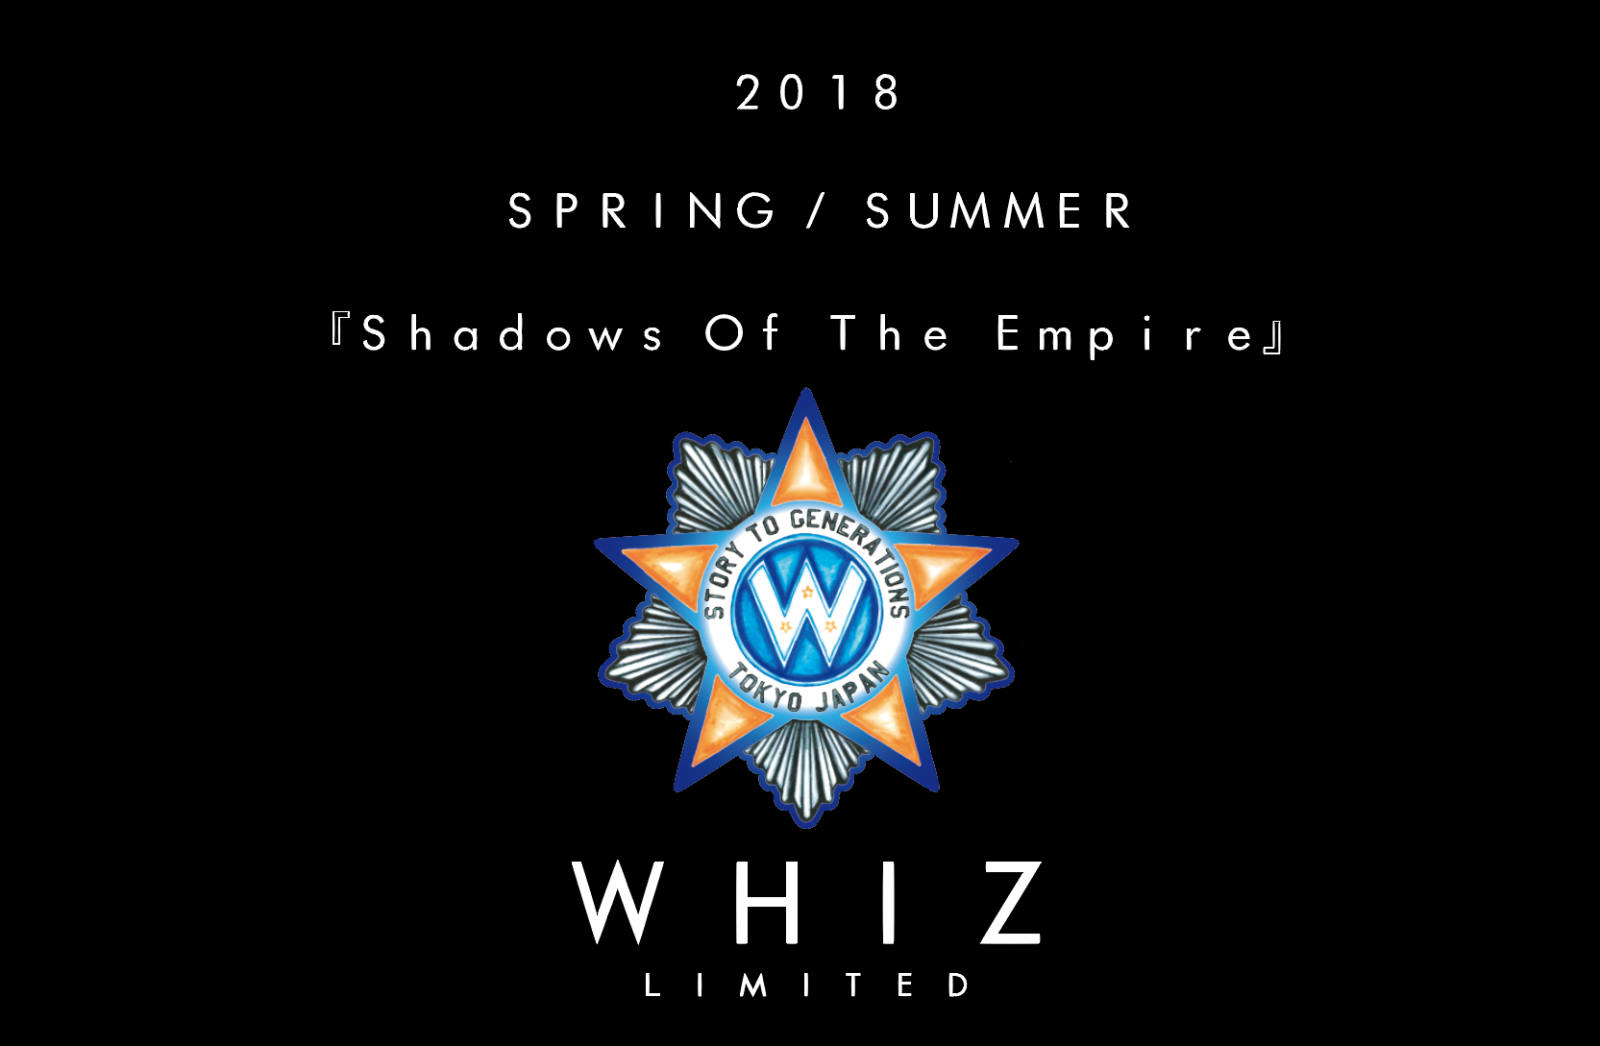 WHIZ LIMITED 2018 SS COLLECTION / SHADOWS OF THE EMPIRE